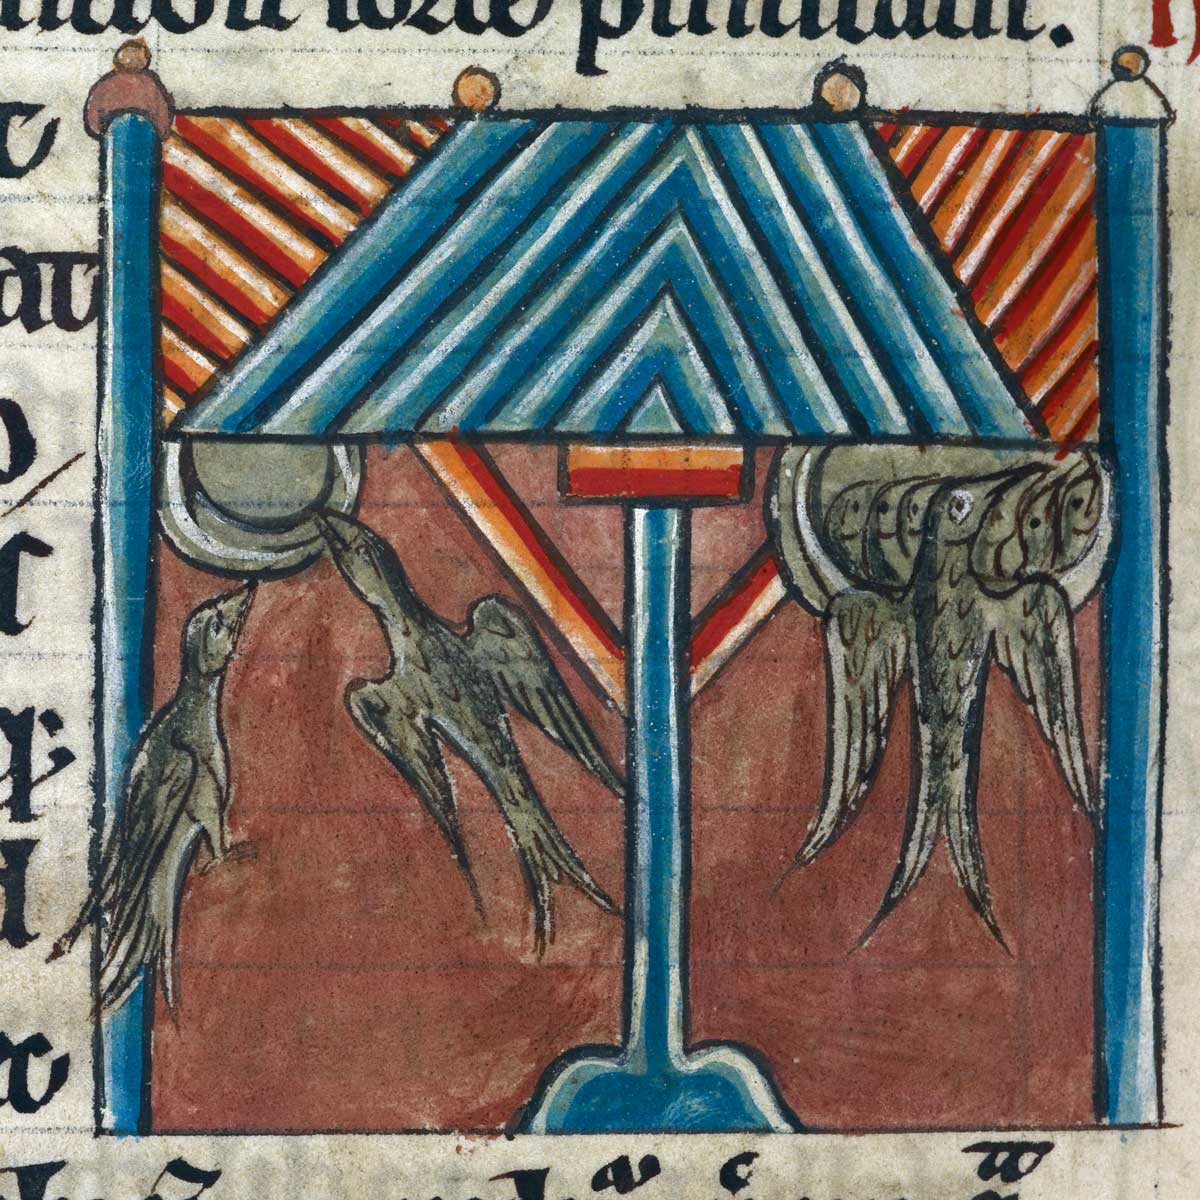 Swallows build their nests under the eaves of a house, from an English bestiary, c.1230 © British Library Board/Bridgeman Images.